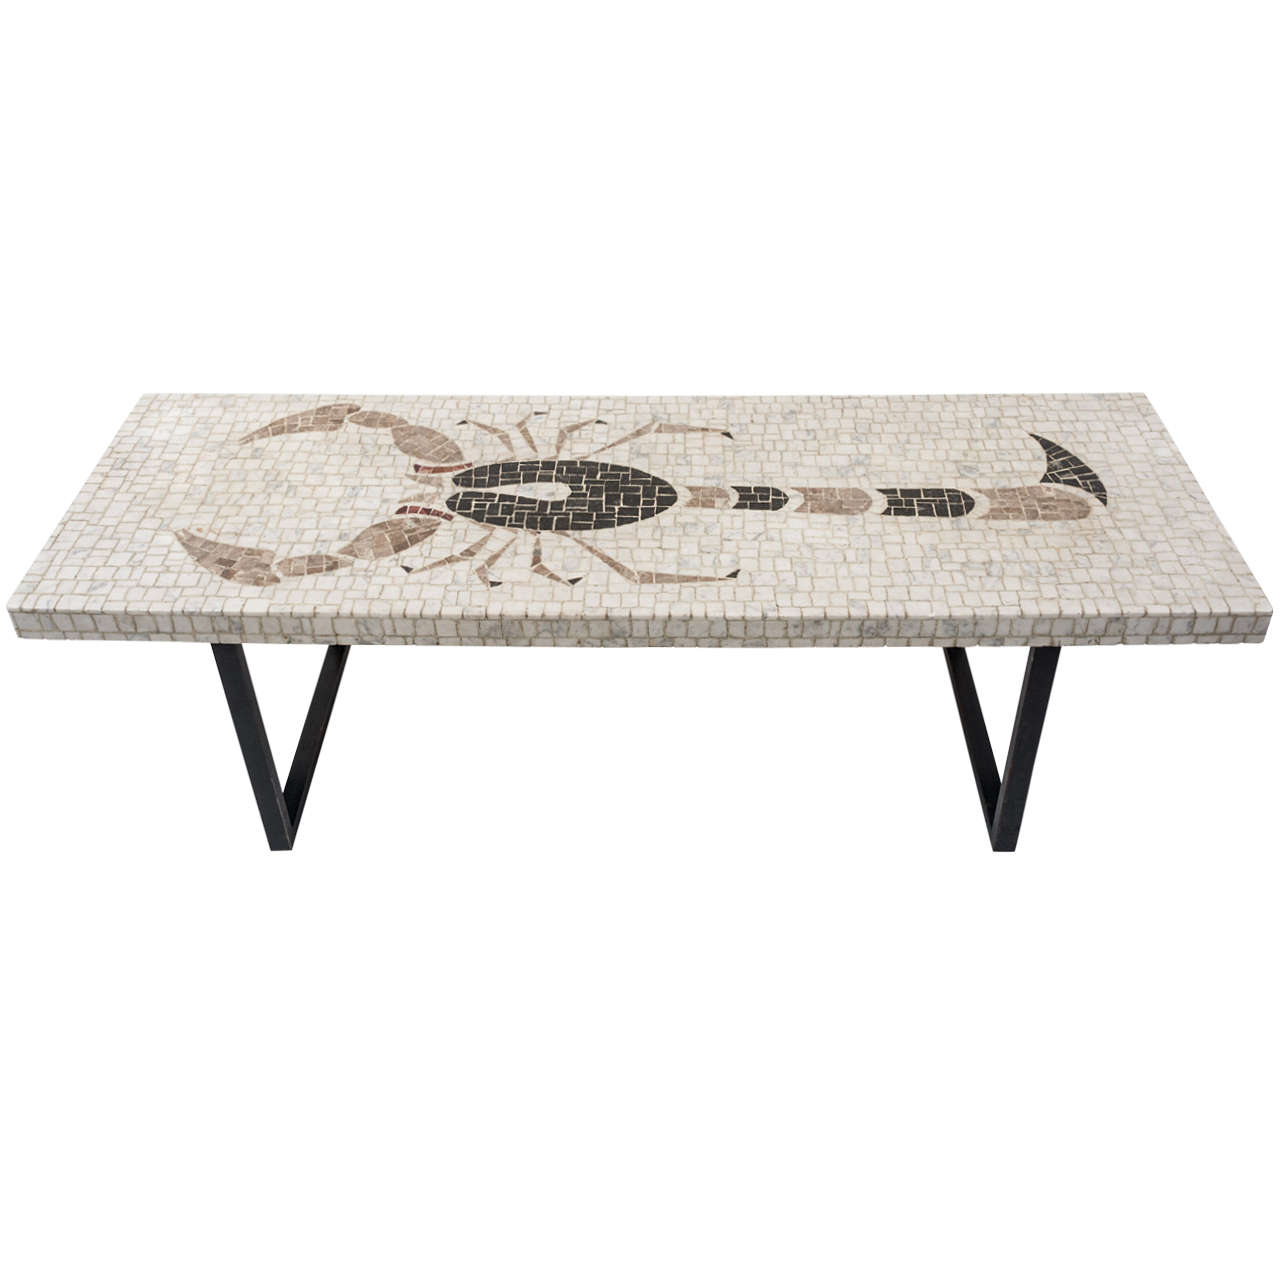 Nail Marble Top Coffee Table: Mosaic Marble Top Coffee Table Inset With Design Of